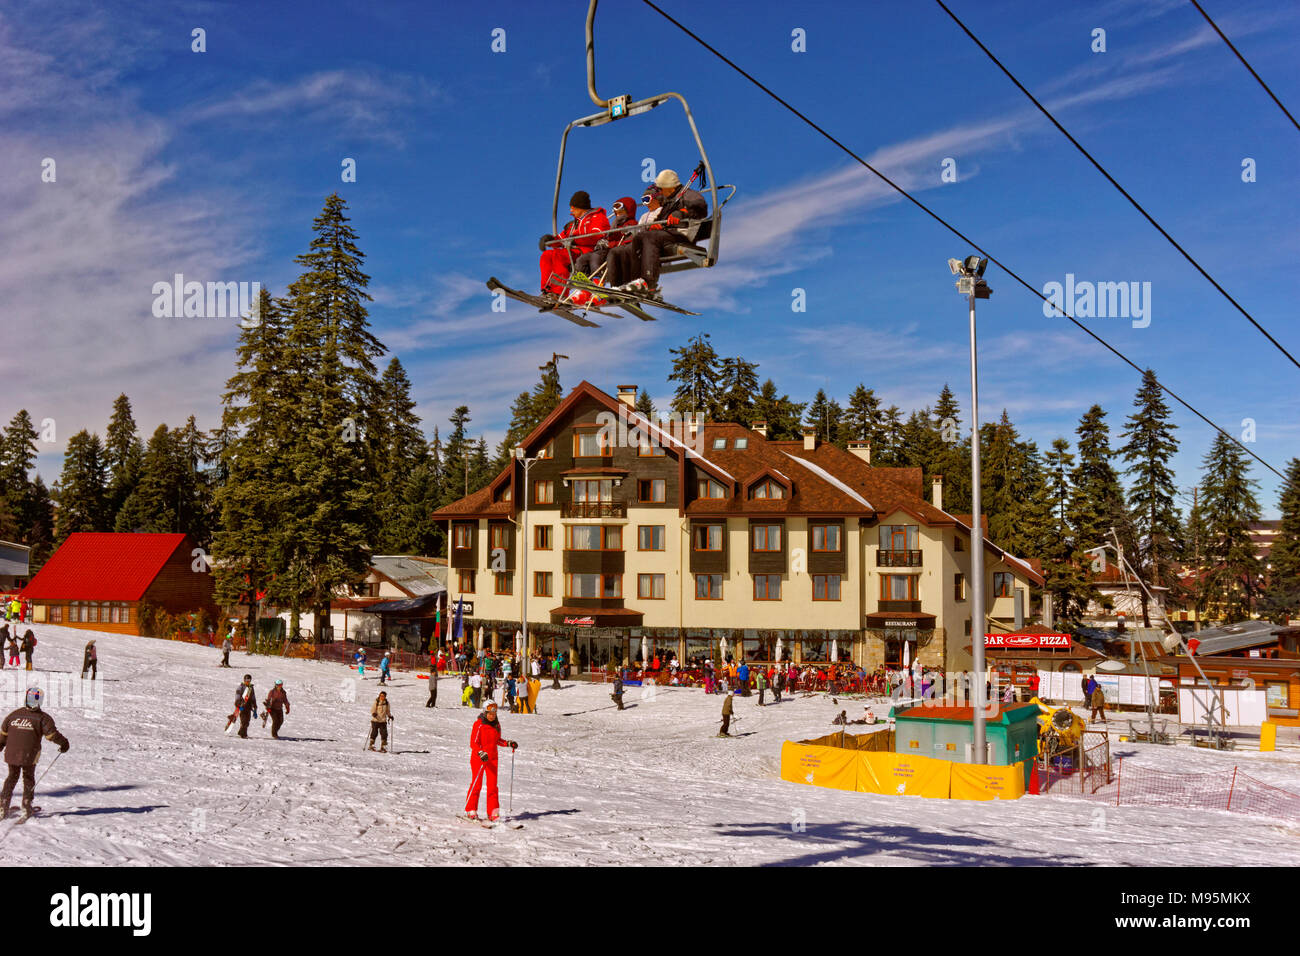 Hotel Ice Angels und Martinovi Baraki Sesselbahn am Borovets Ski Resort, Targovishte, Bulgarien. Stockbild